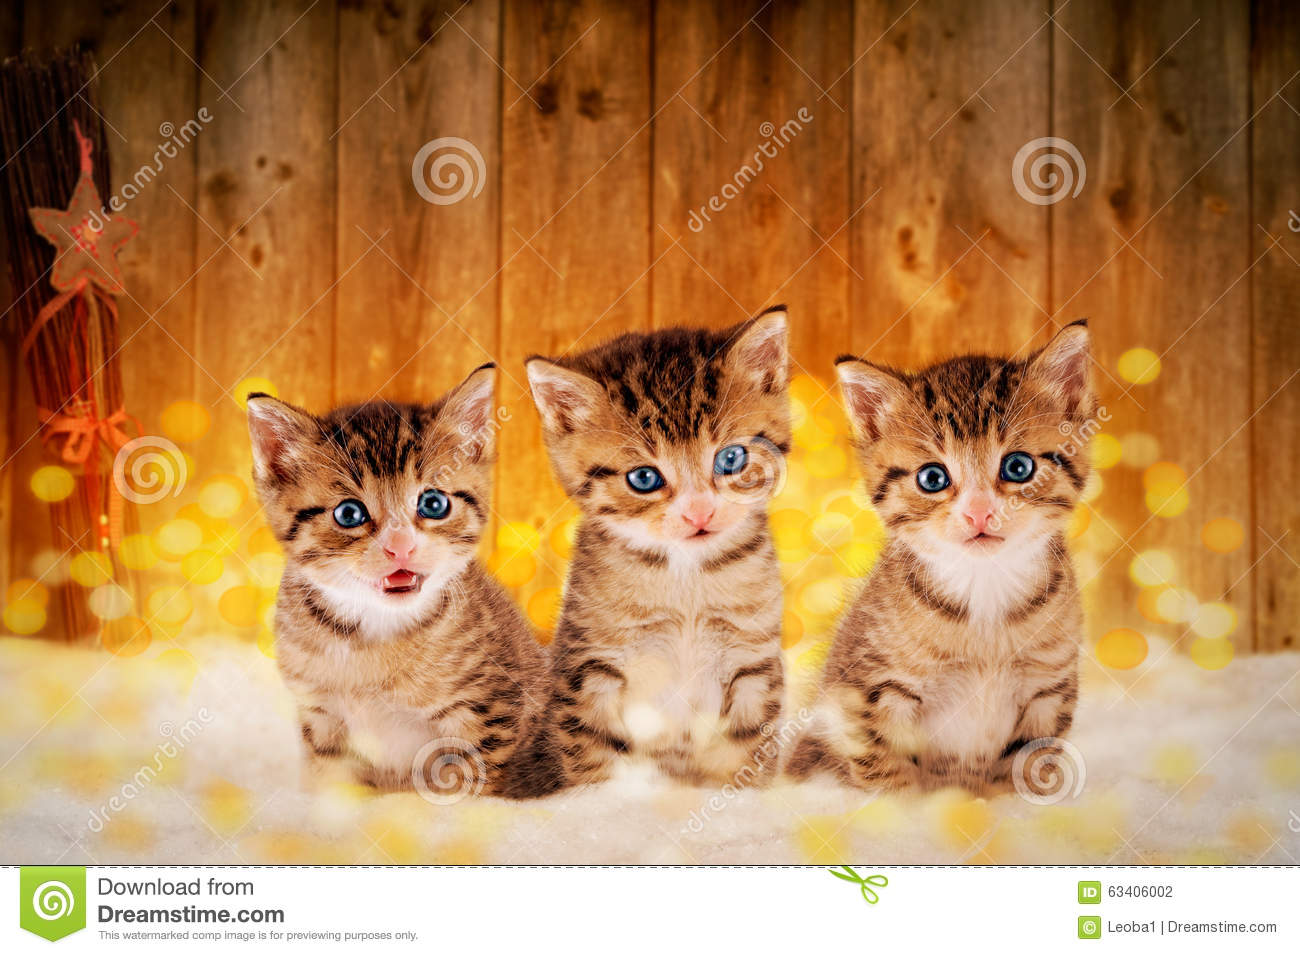 Cute Christmas Kitten Wallpaper Three Little Kittens Sitting In The Snow With Christmas